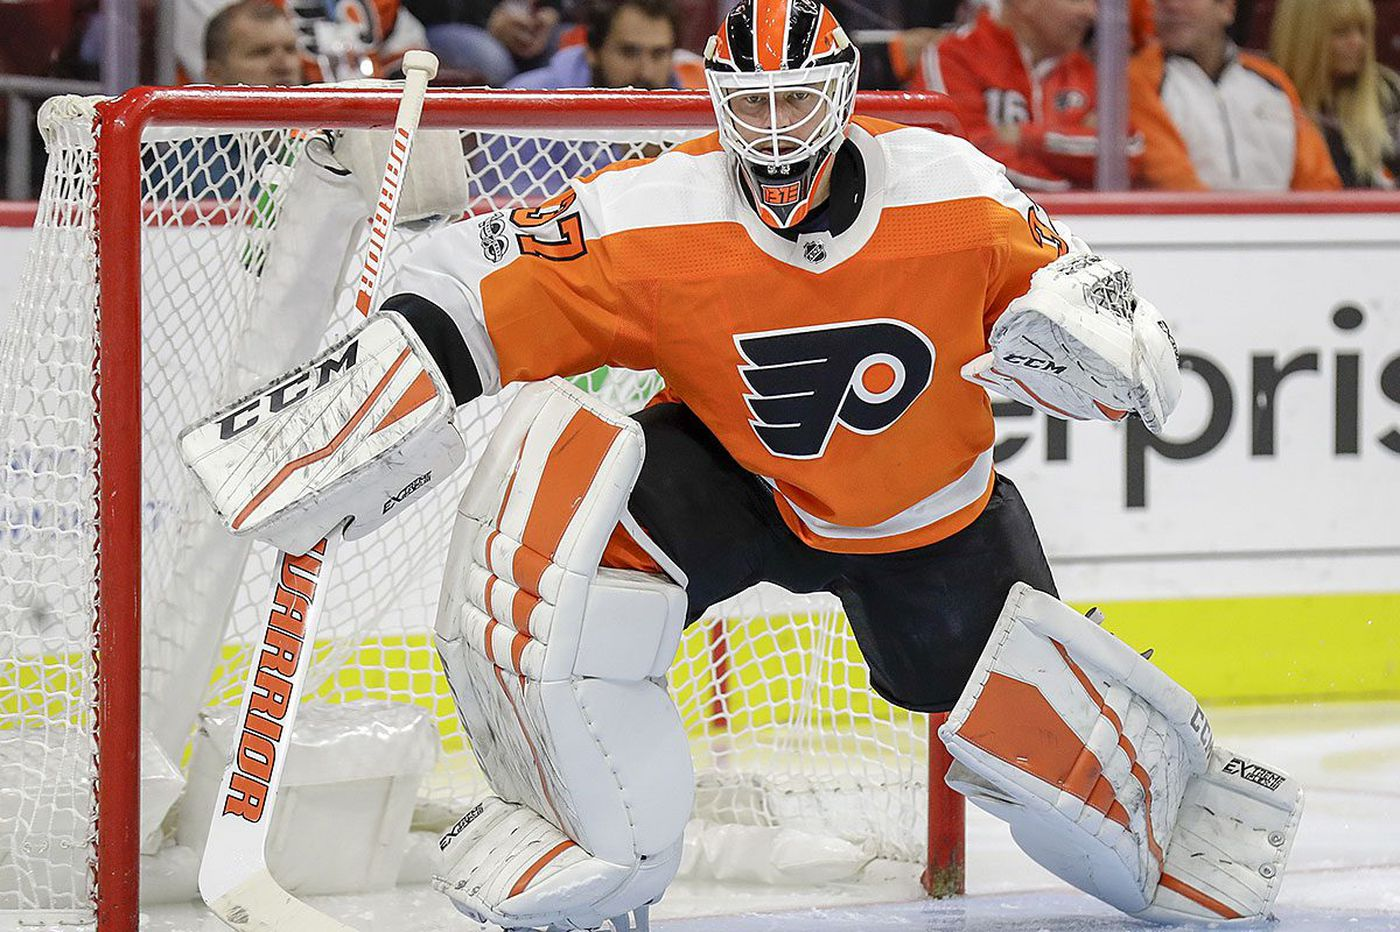 For Flyers, core muscle injuries aren't all alike